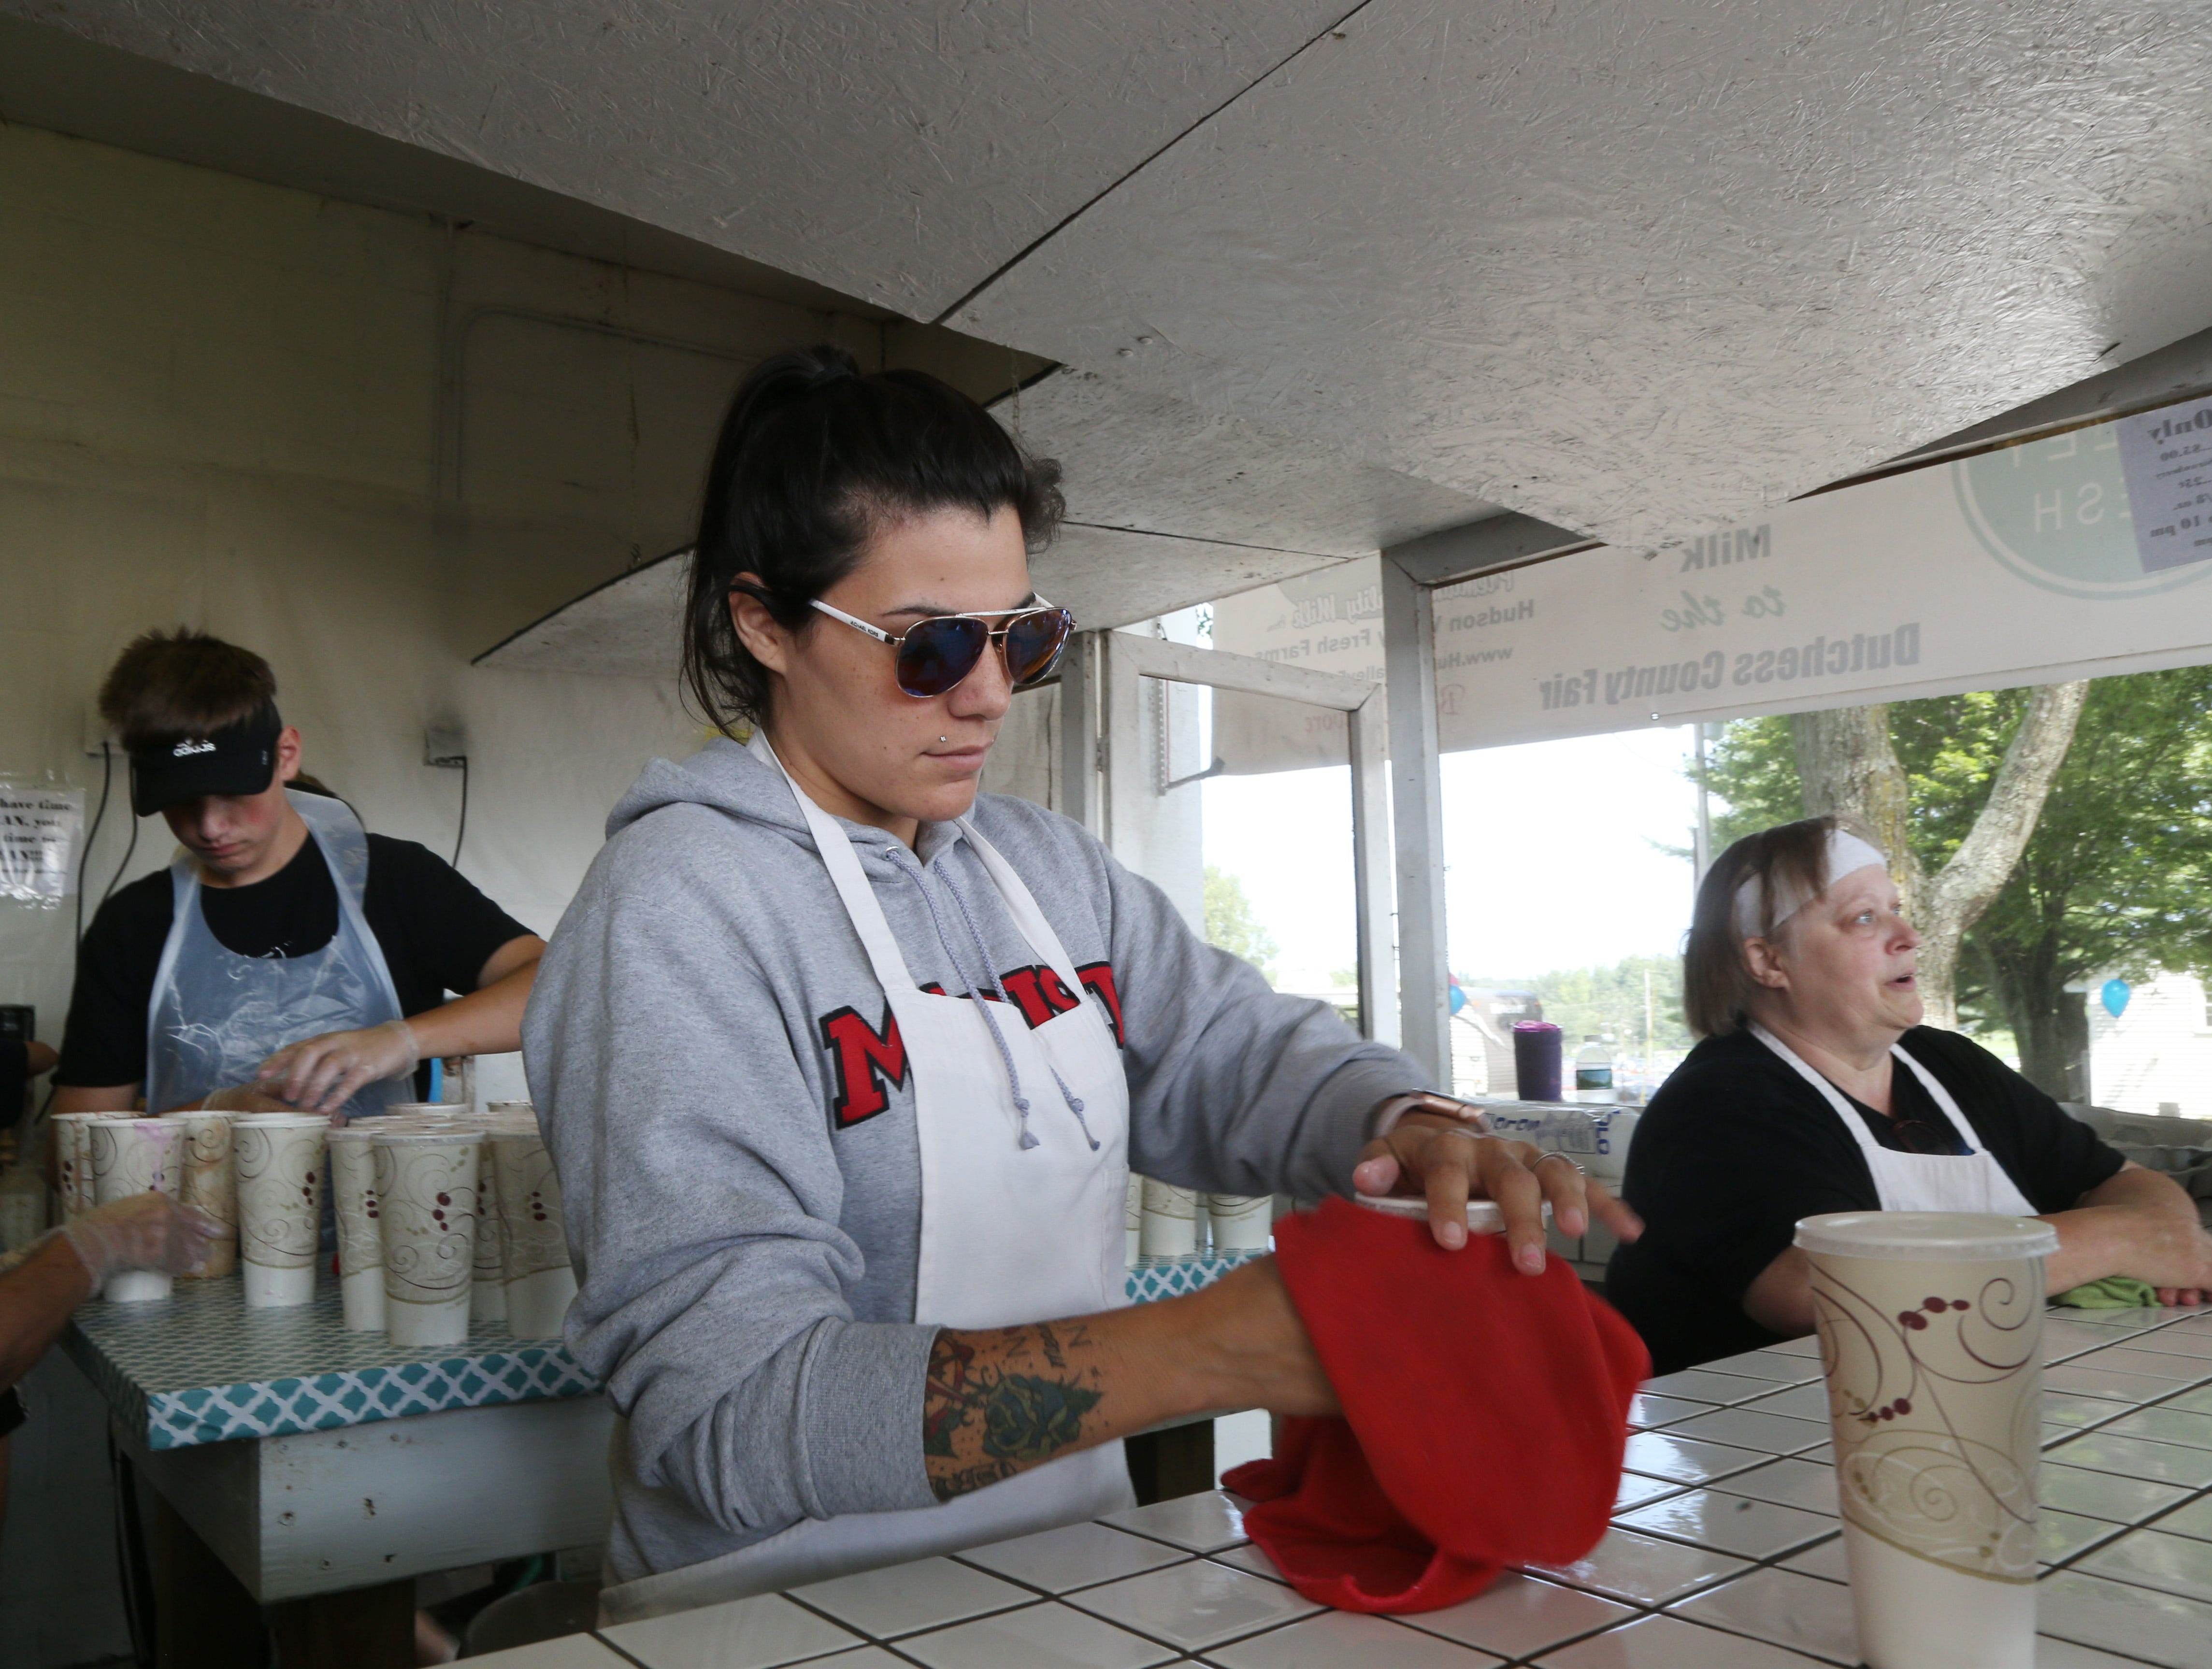 Samantha Salat or Rhinebeck puts the finishing touches on milkshakes at the Dutchess County Fair in Rhinebeck on August 21 2018.